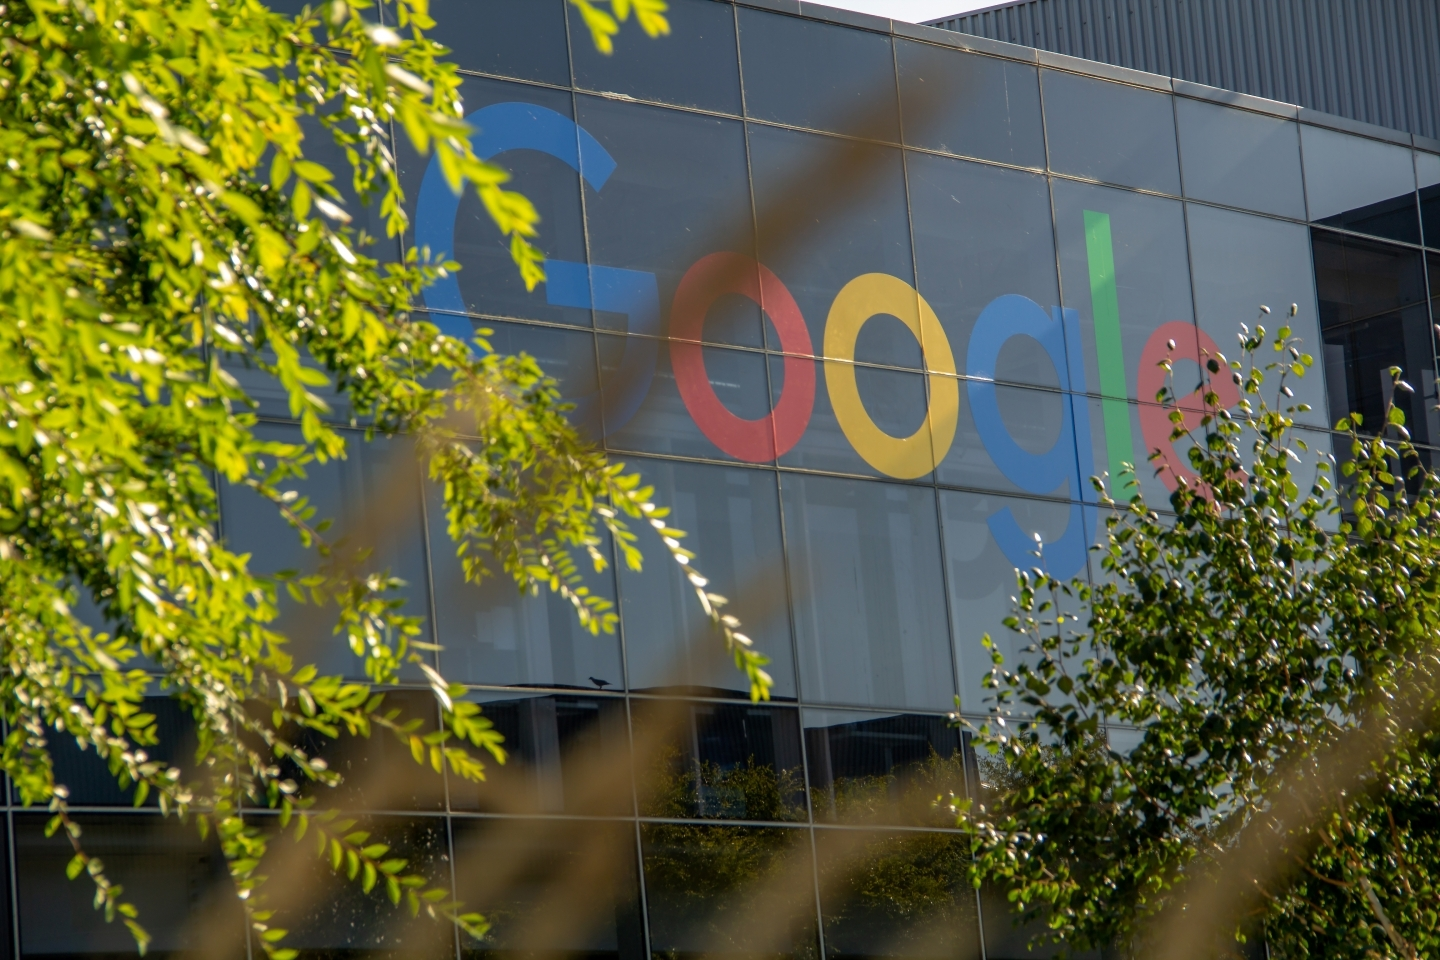 Last year, google withdrew its participation from a project that used machine learning to improve surveillance and target identification by military drones. (Shutterstock)